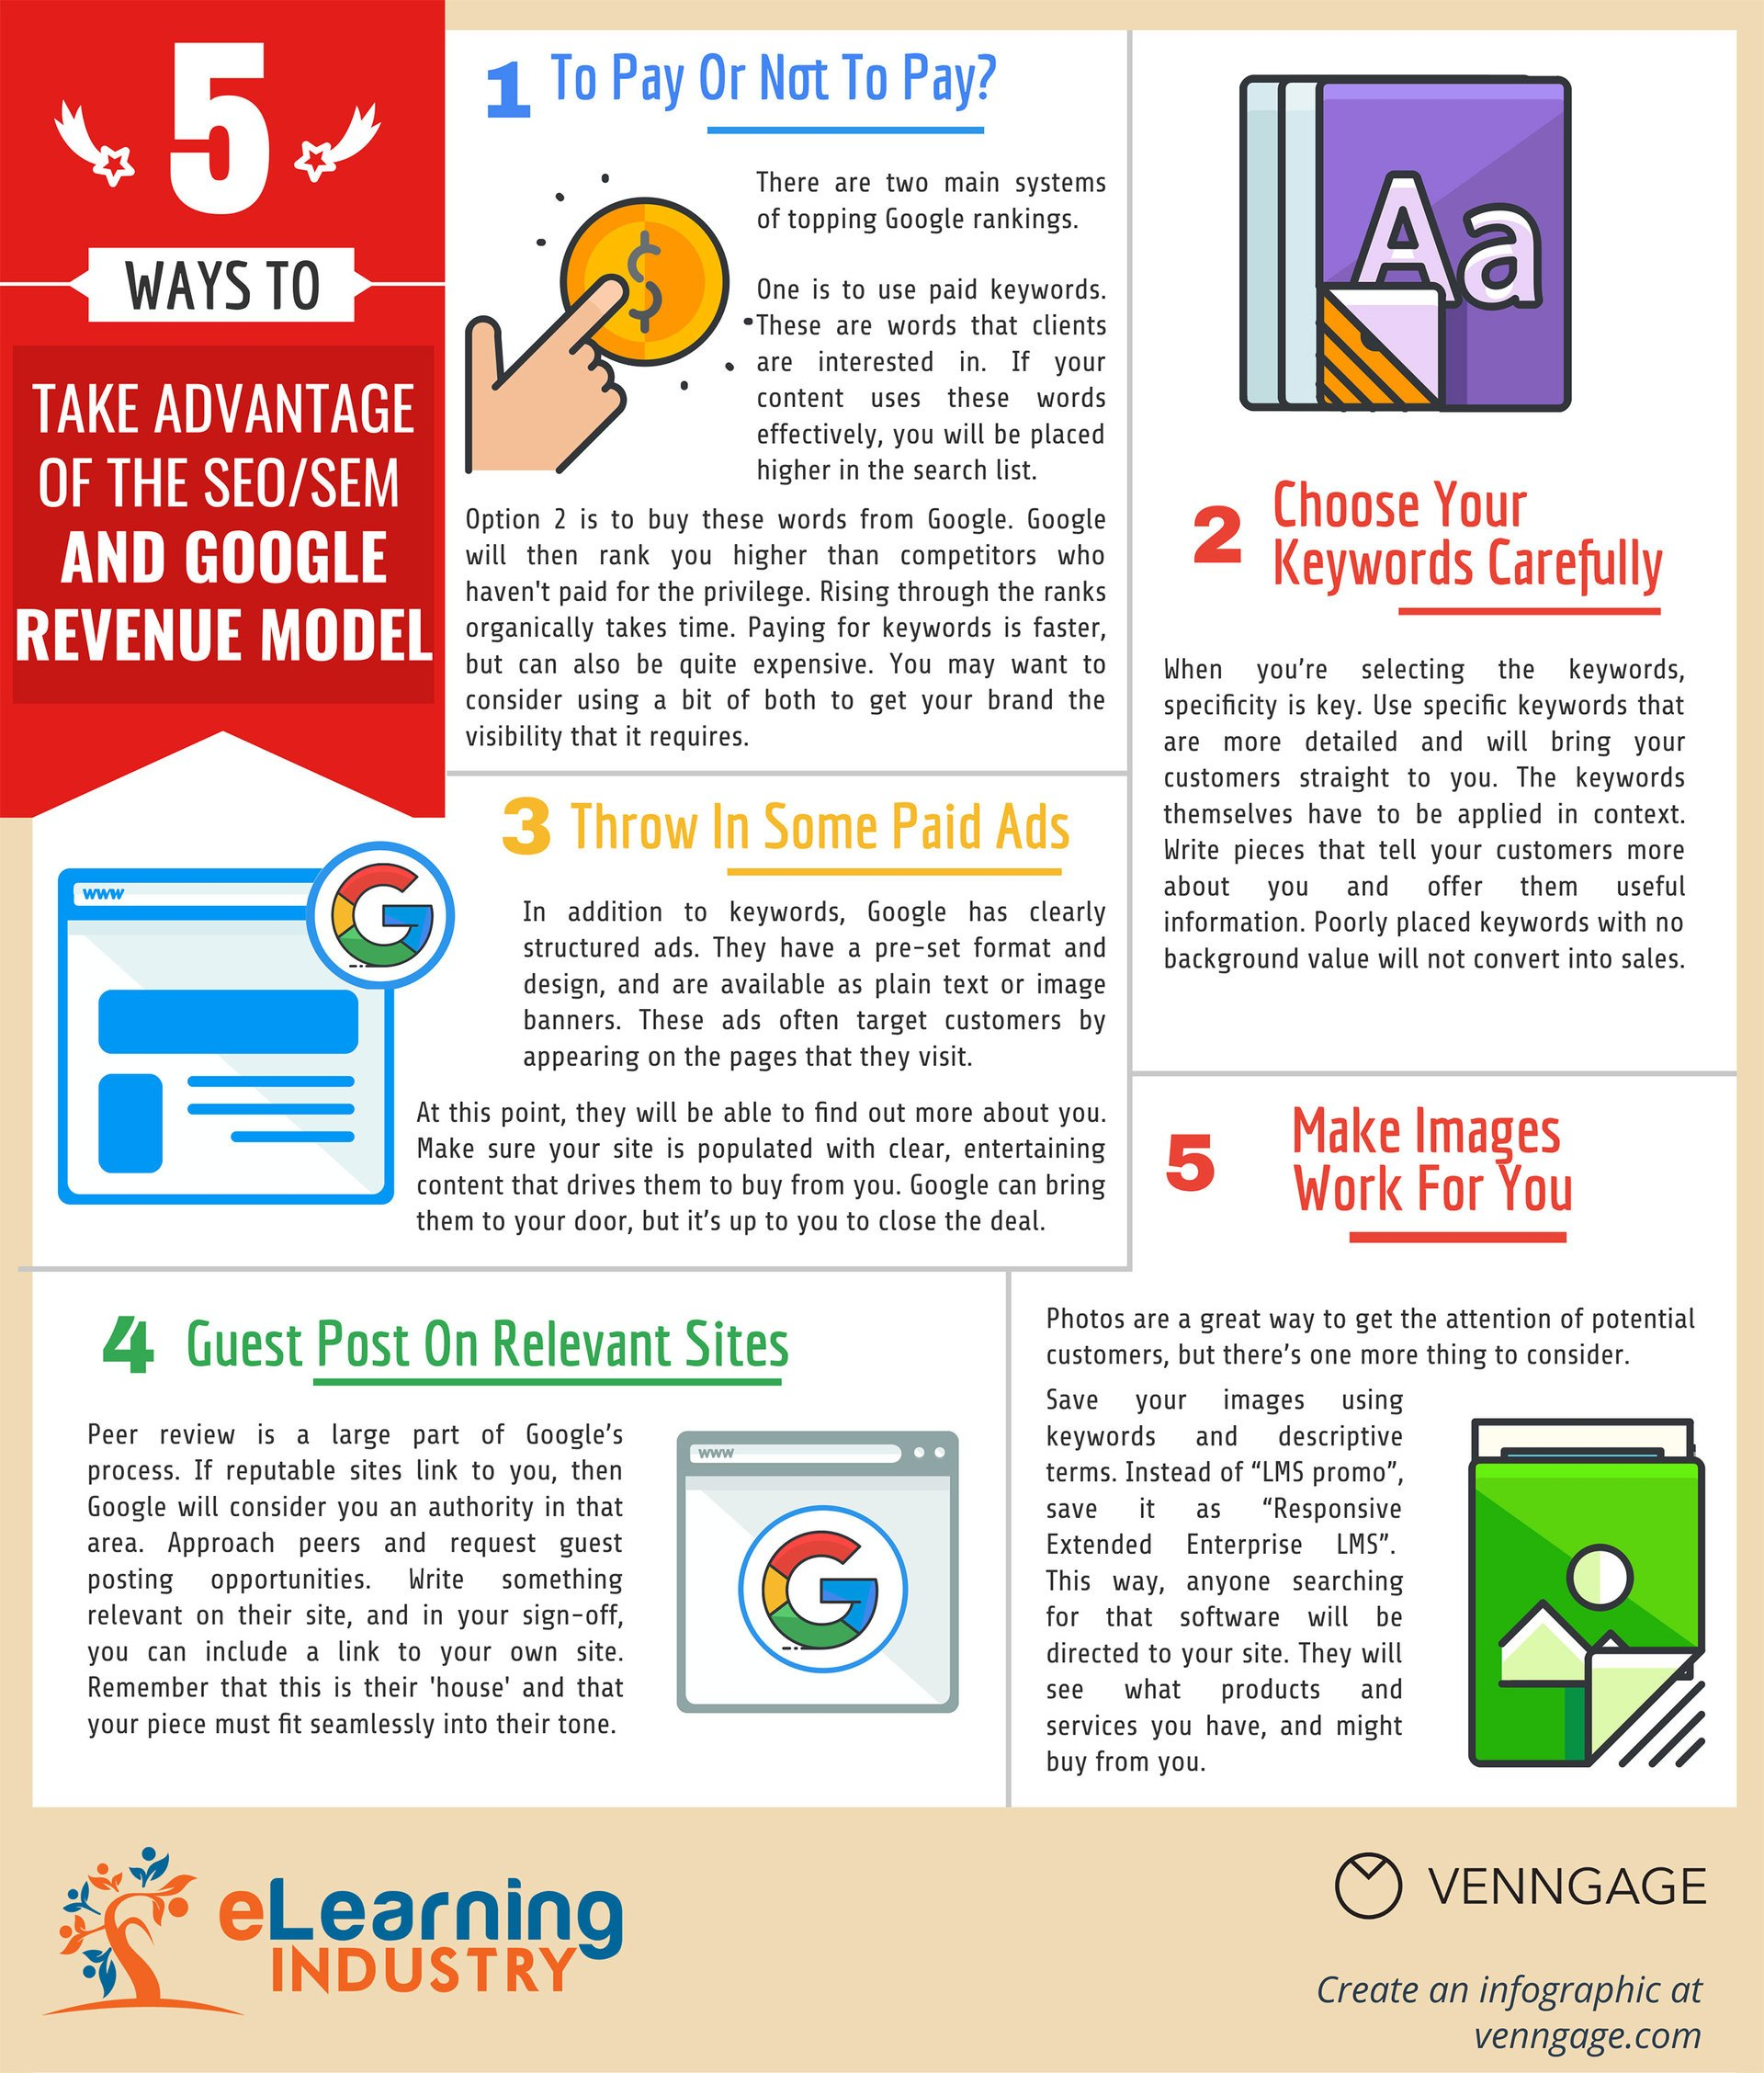 5 Ways To Take Advantage Of The SEO/SEM And Google Revenue Model Infographic